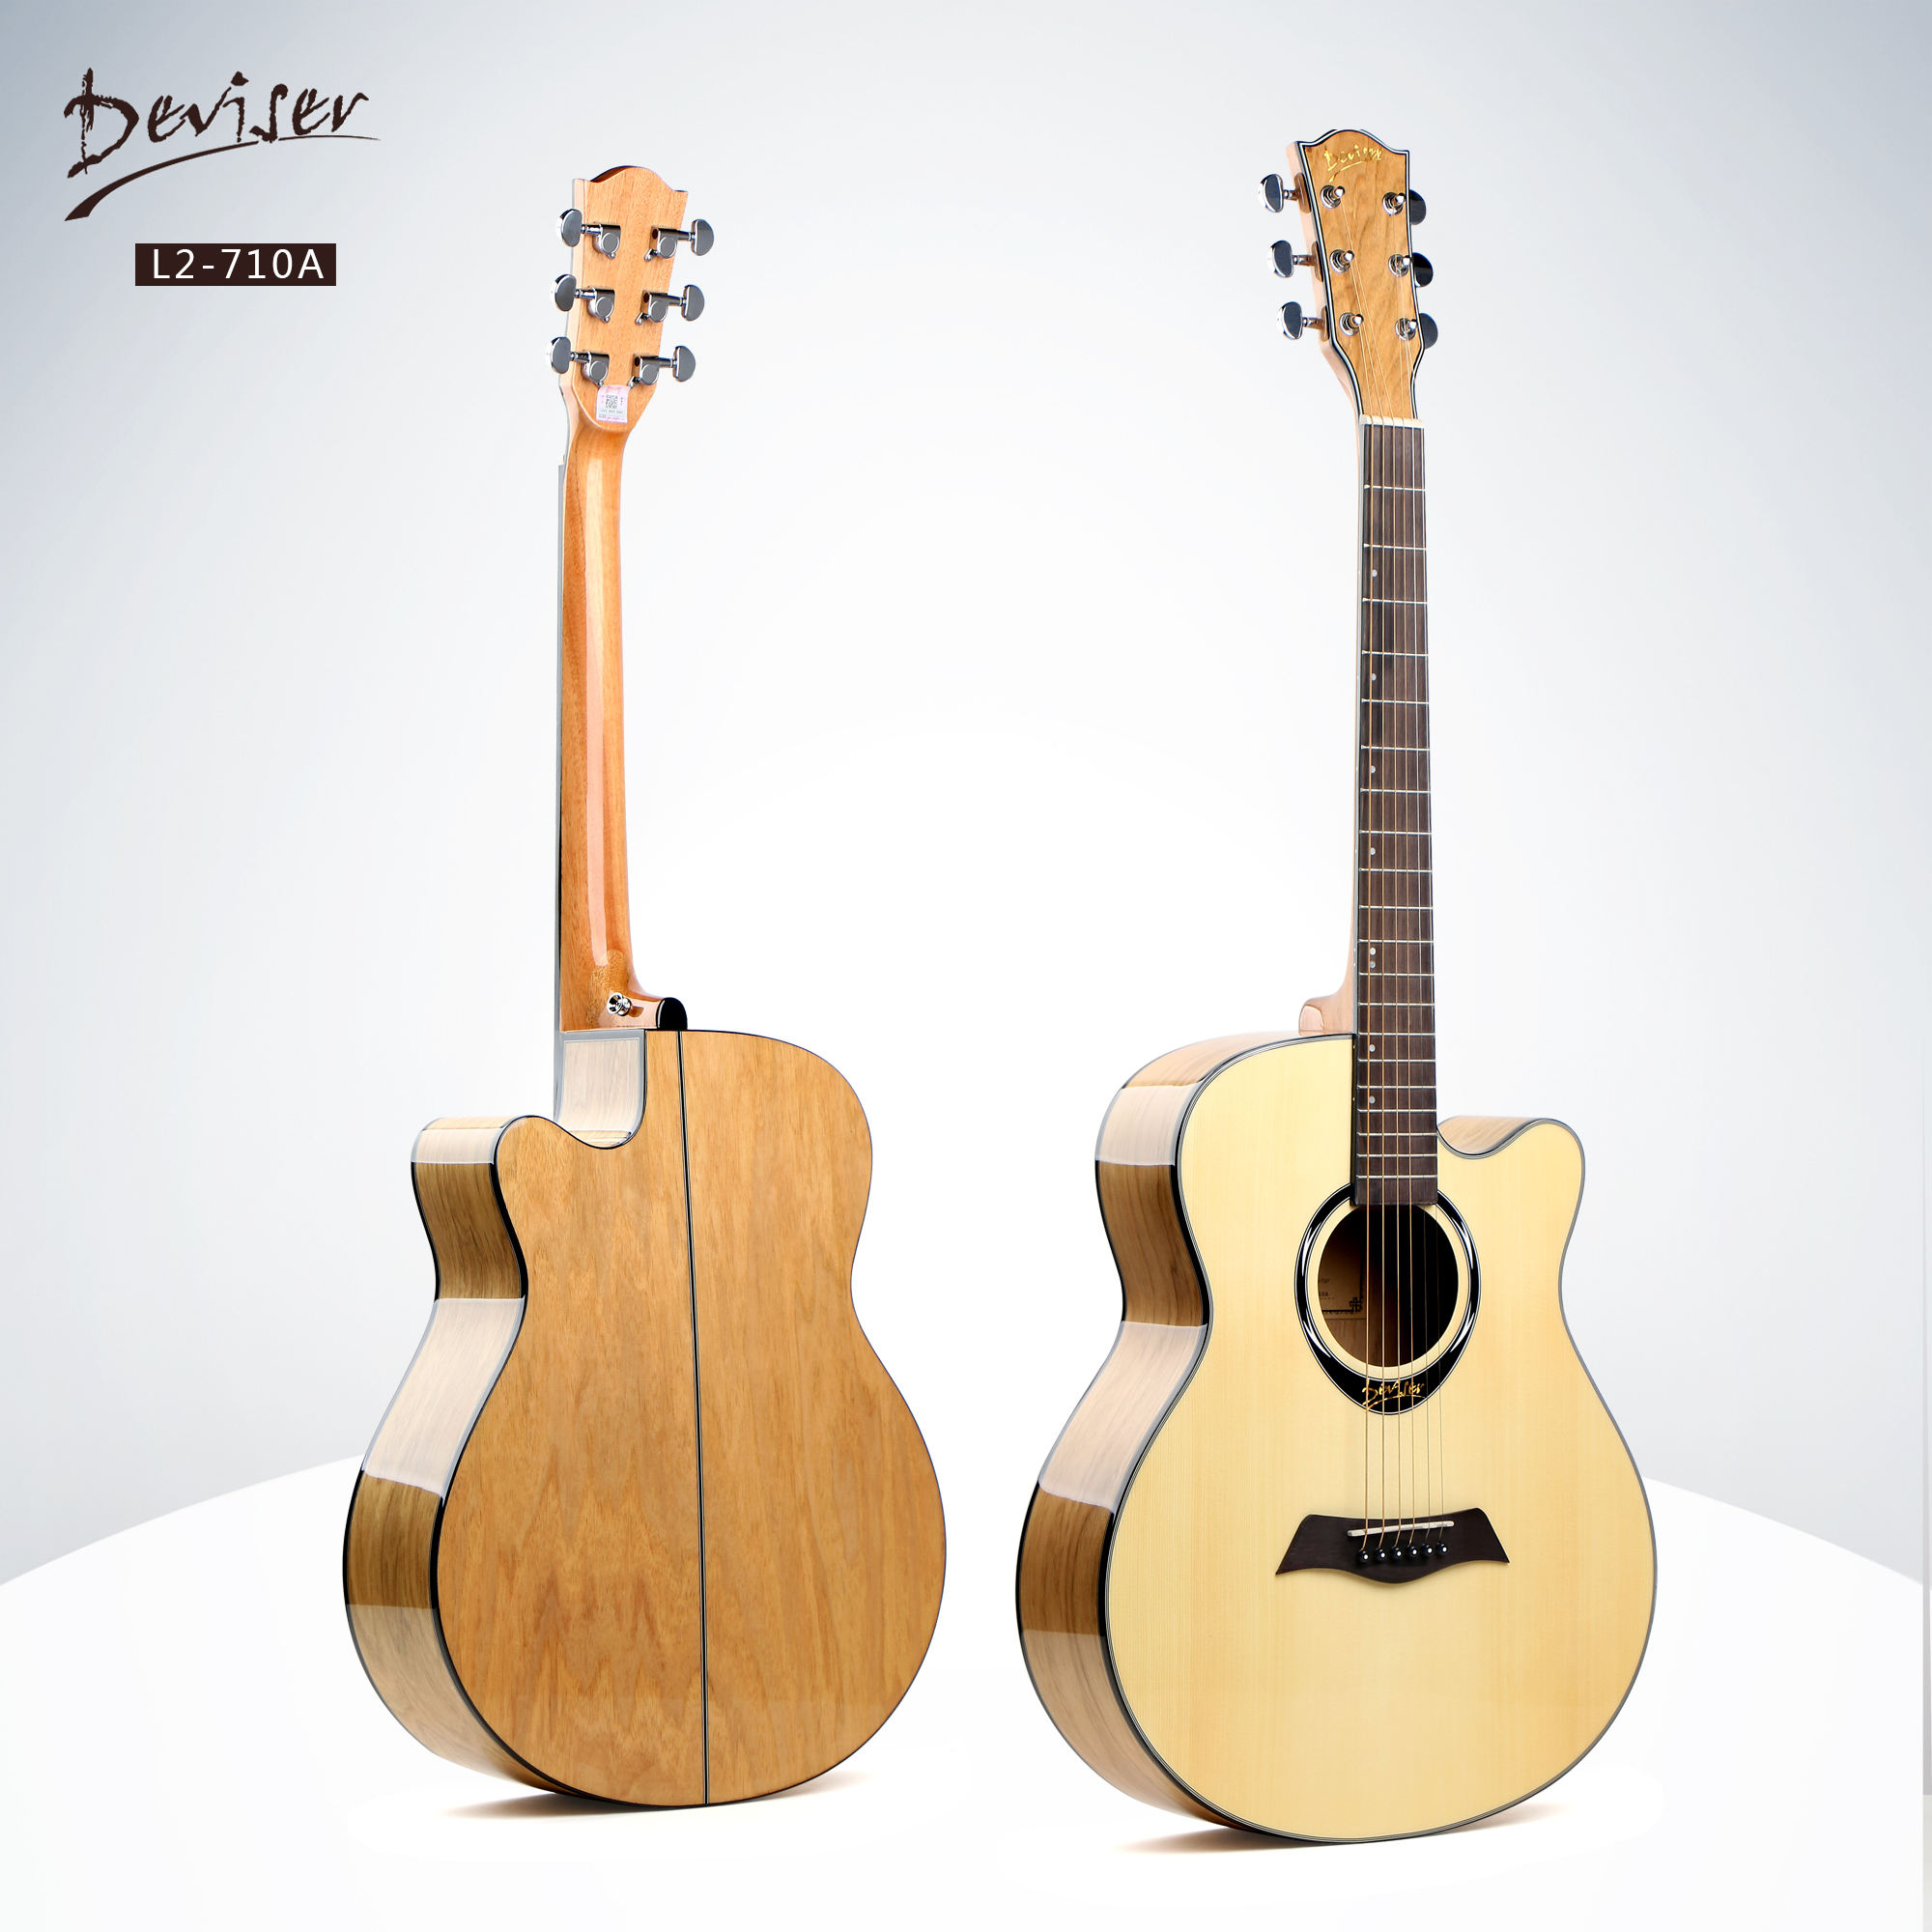 Deviser middle quality acoustic guitar solid spruce top catalpa back guitar factory direct